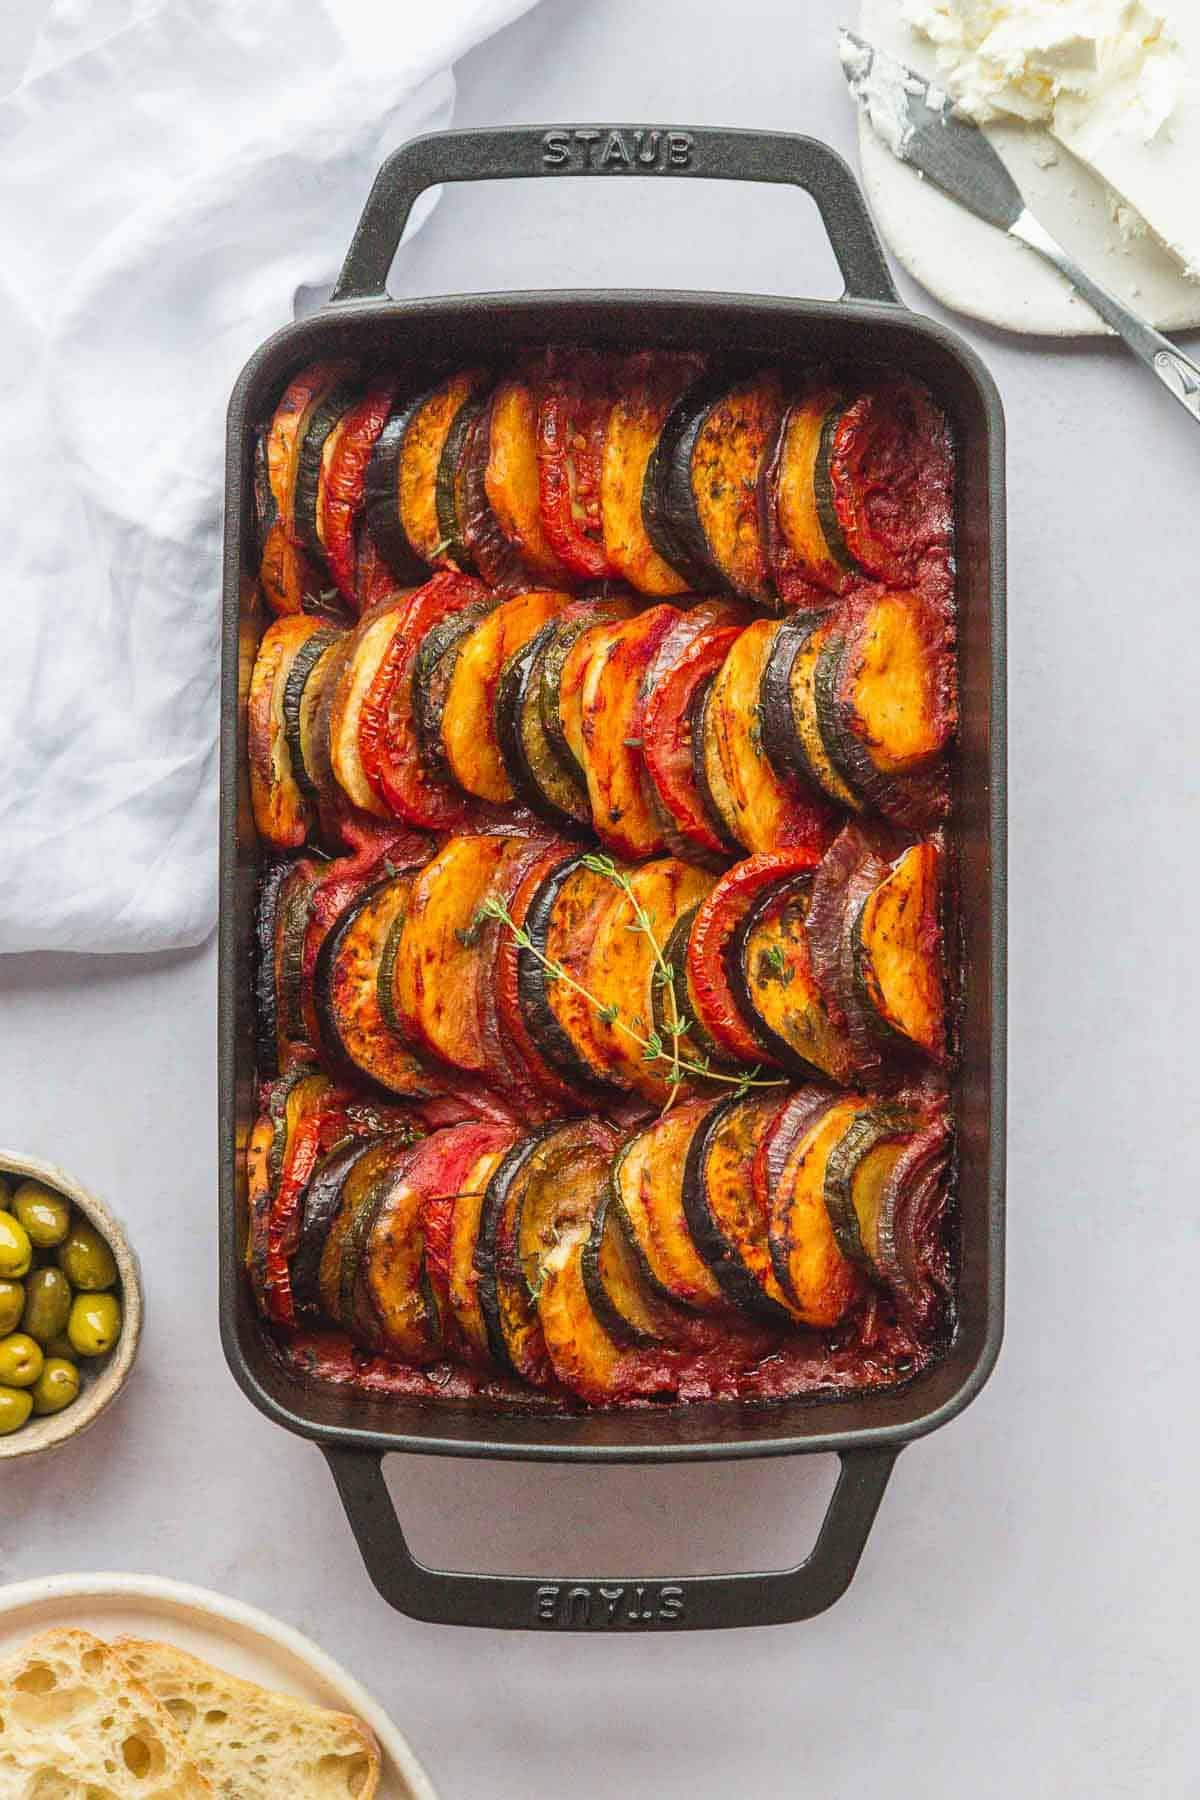 Roasted Greek vegetables in a black Staub baking dish